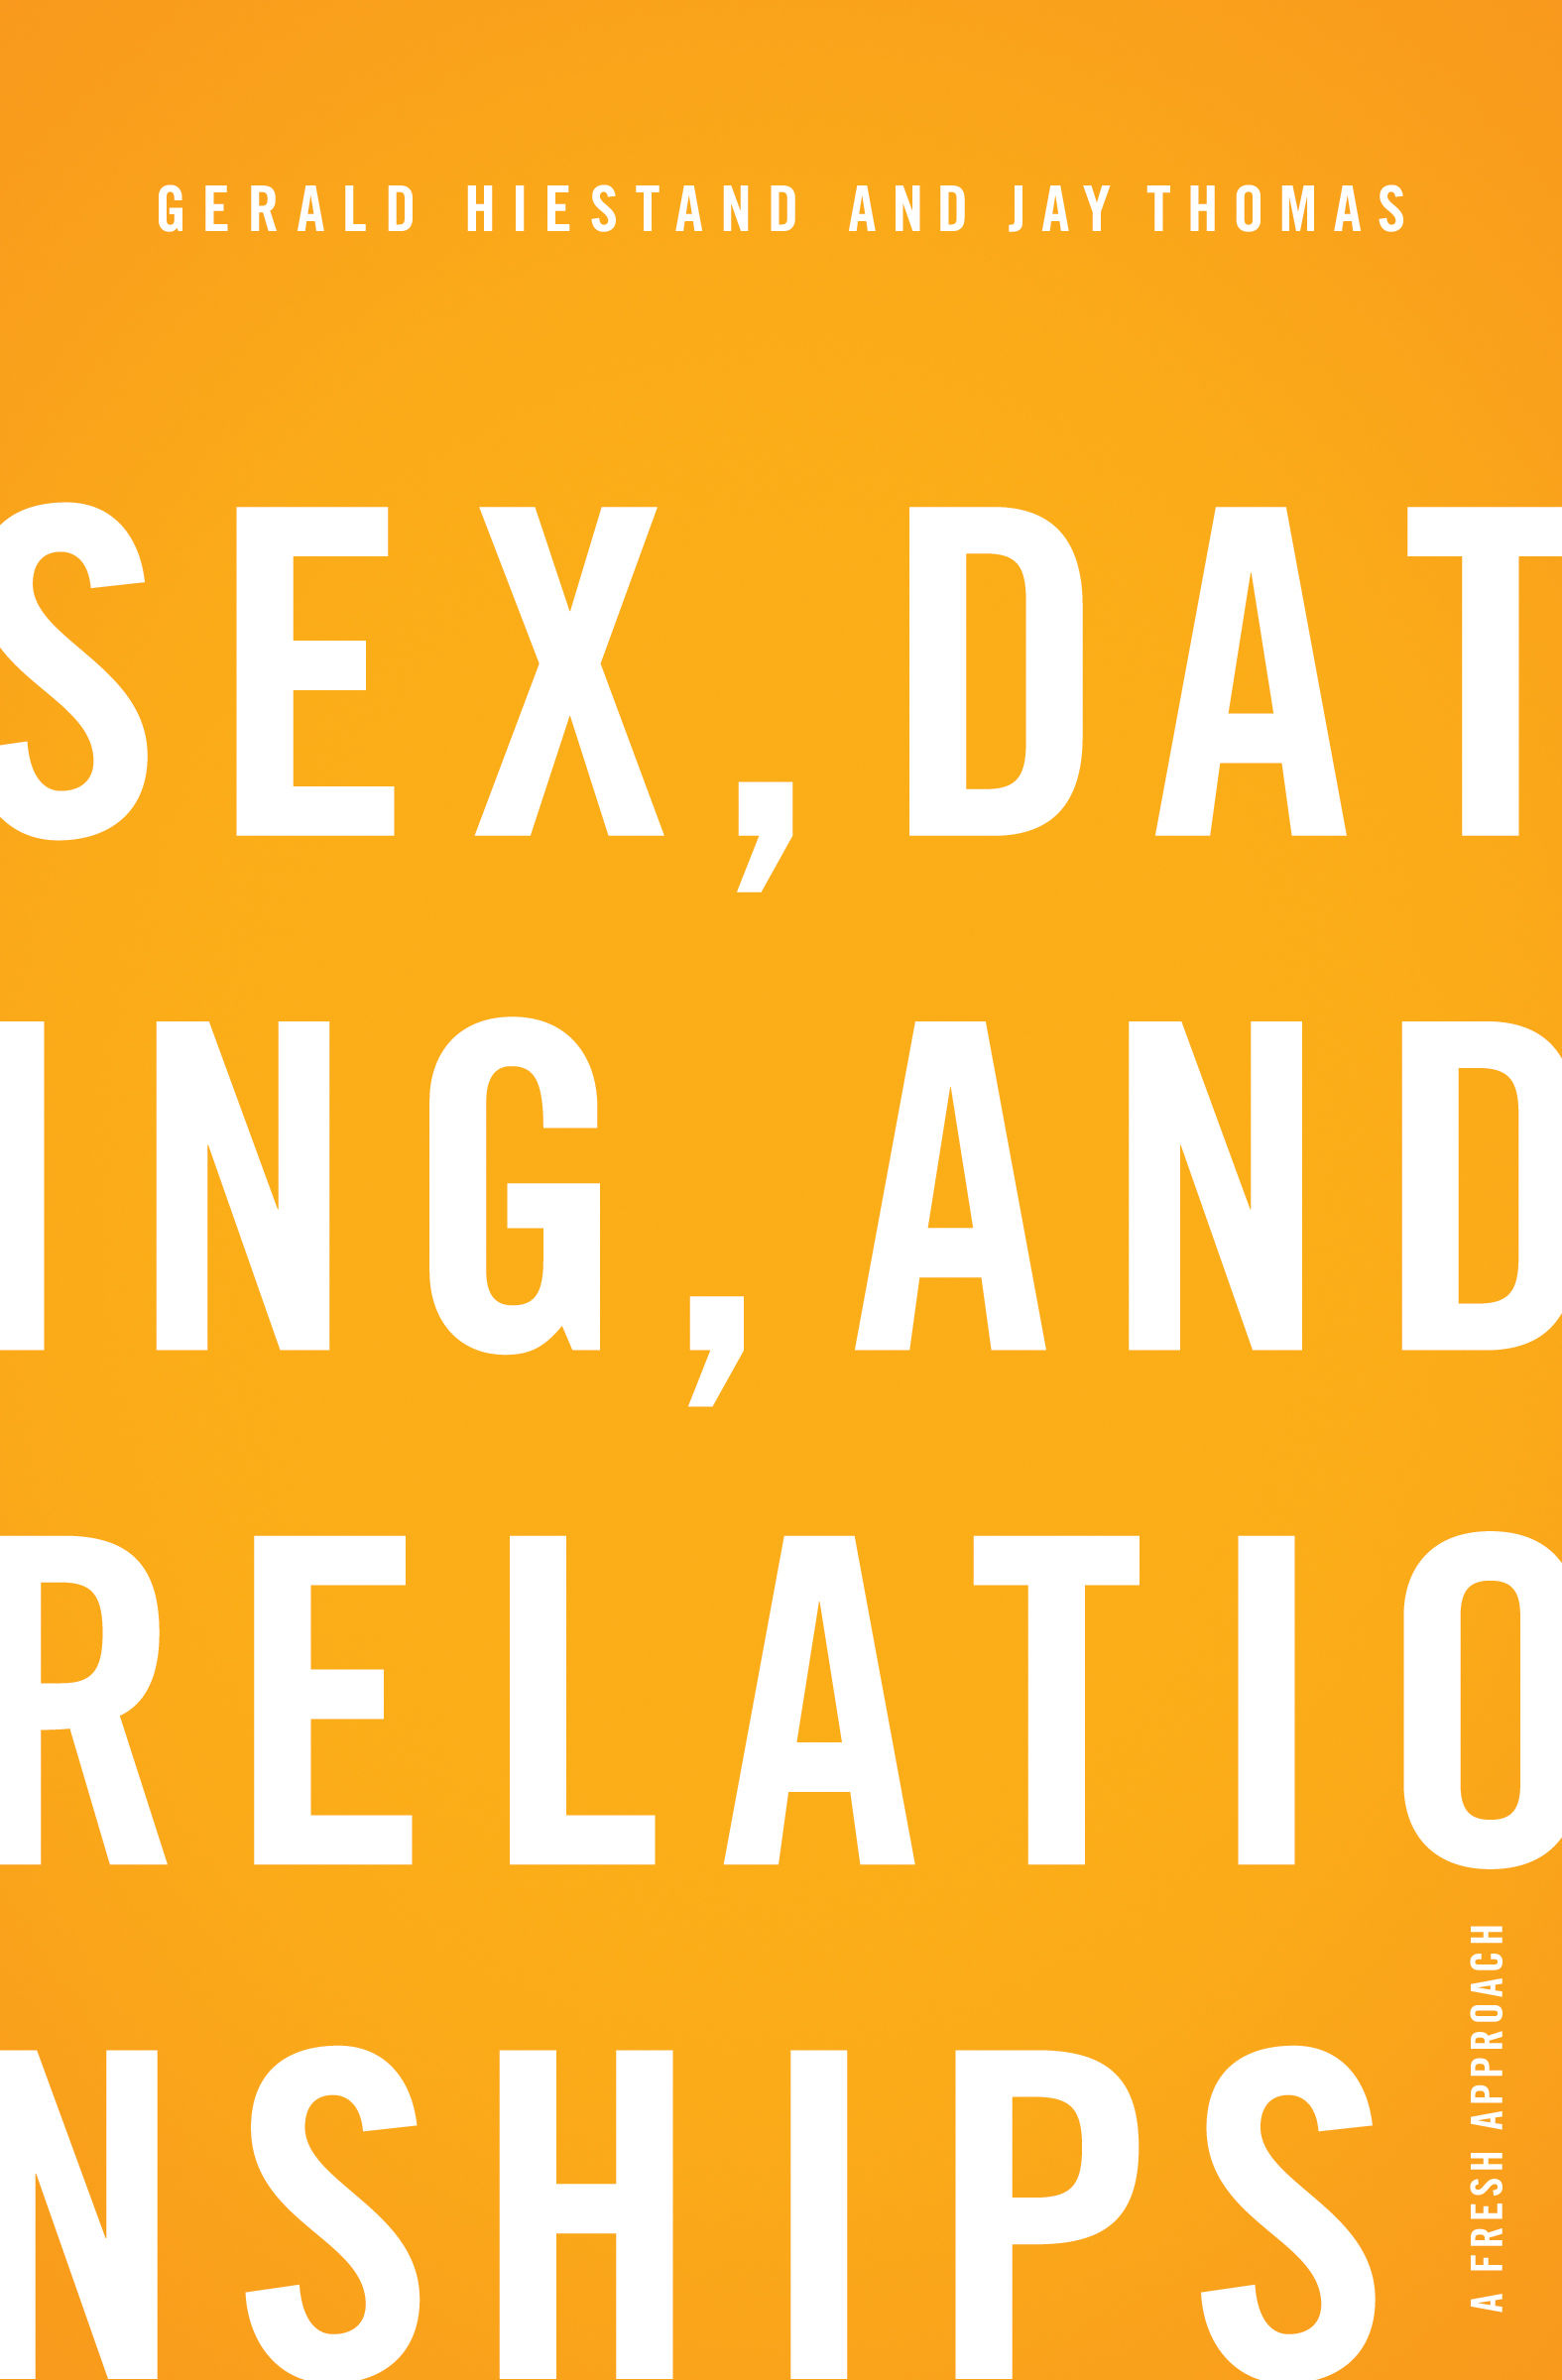 Sex dating and relationships gerald hiestand